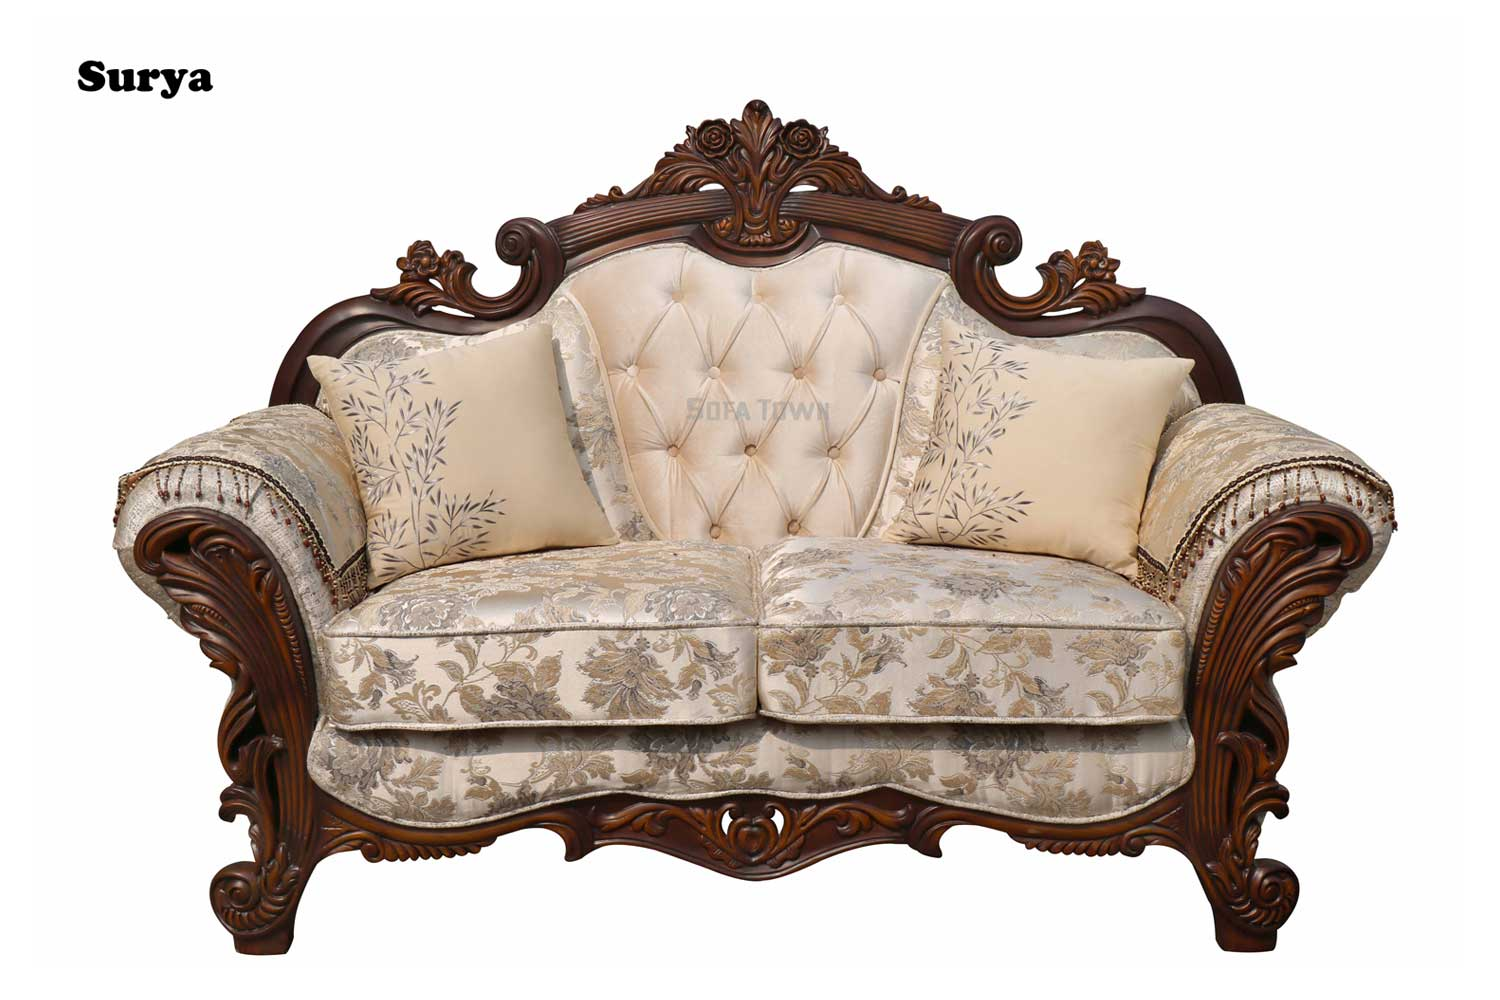 The Ultimate Deal On Furniture Manufactures in Delhi